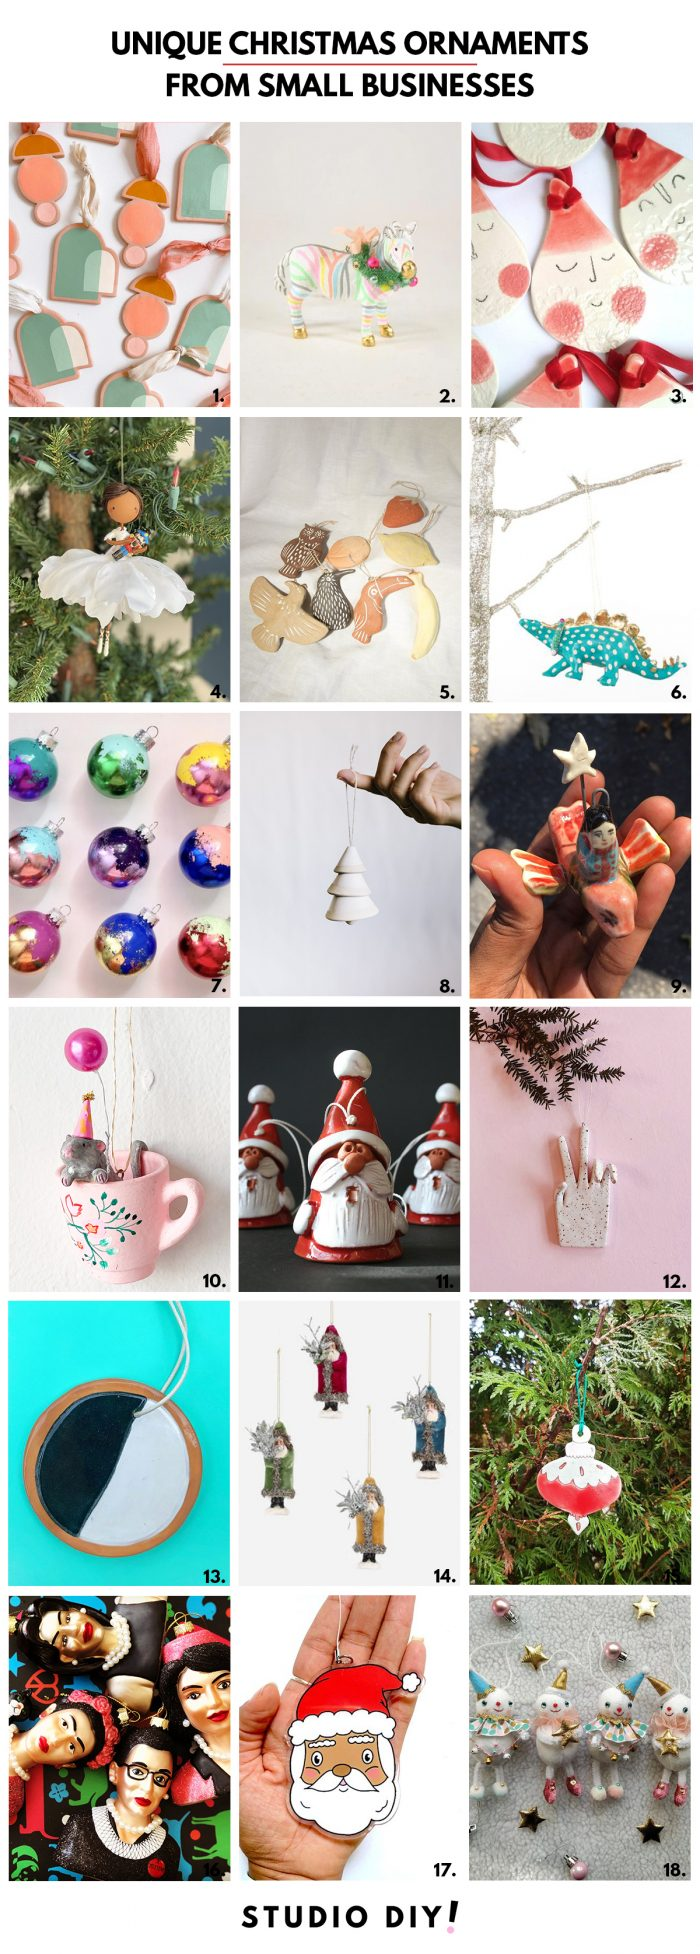 Colorful & Unique Christmas Ornaments from Small Businesses